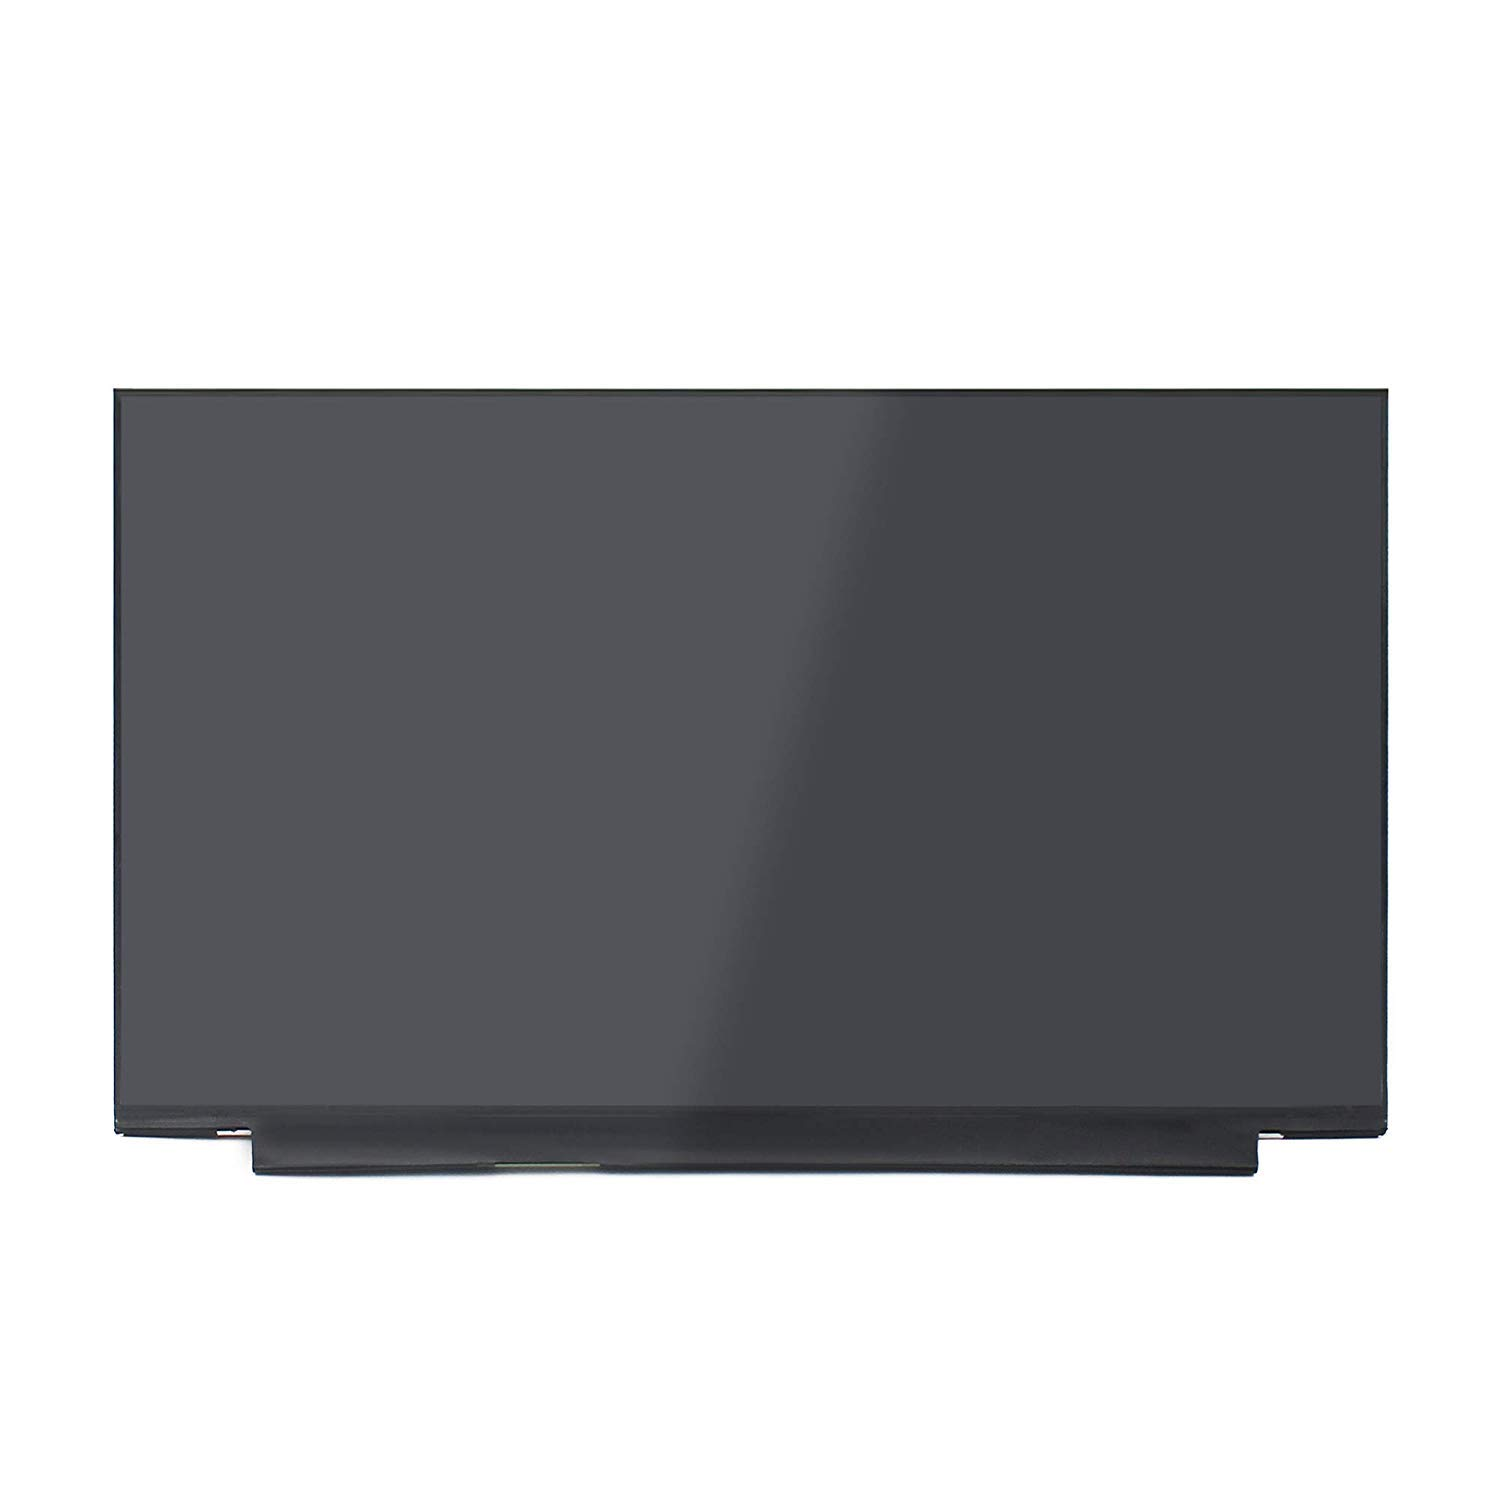 New 15.6'' 72% NTSC 144Hz FullHD 1080P IPS LED LCD Display Screen Panel Replacement for H P Gaming Pavilion 15-cx0056wm 15-cx0077wm 15-cx0058wm